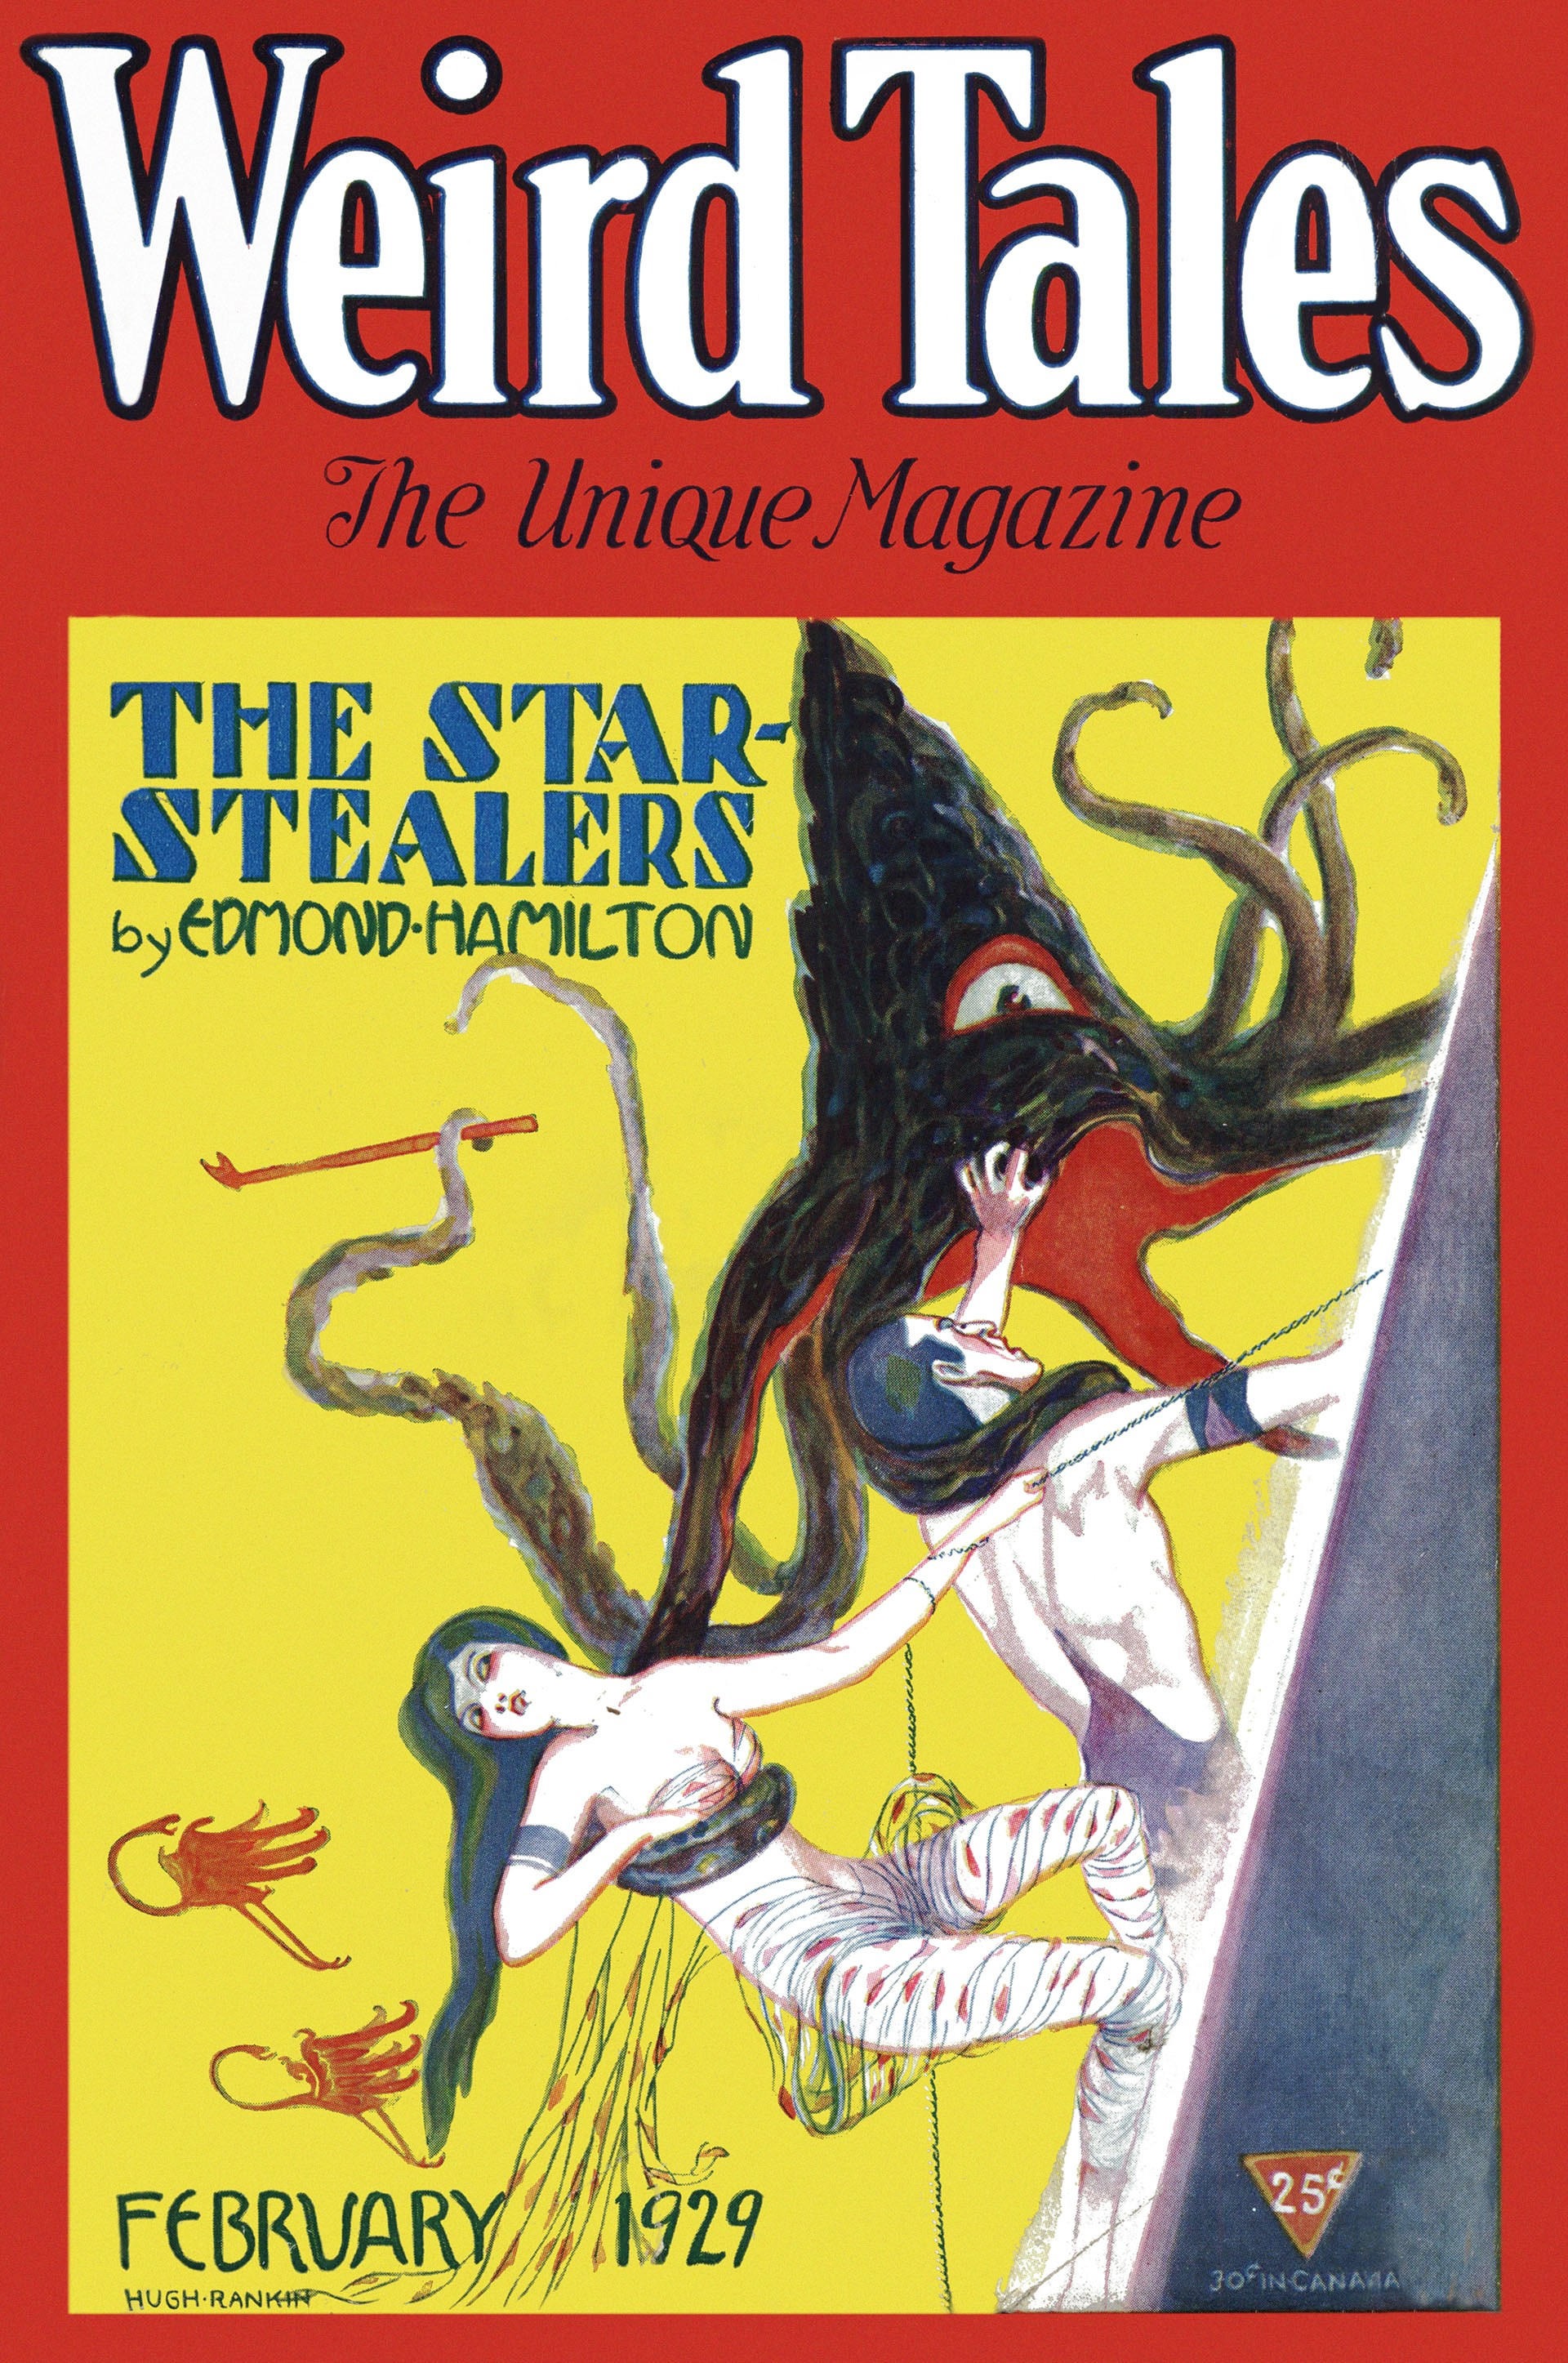 File:Weird Tales February 1929.jpg